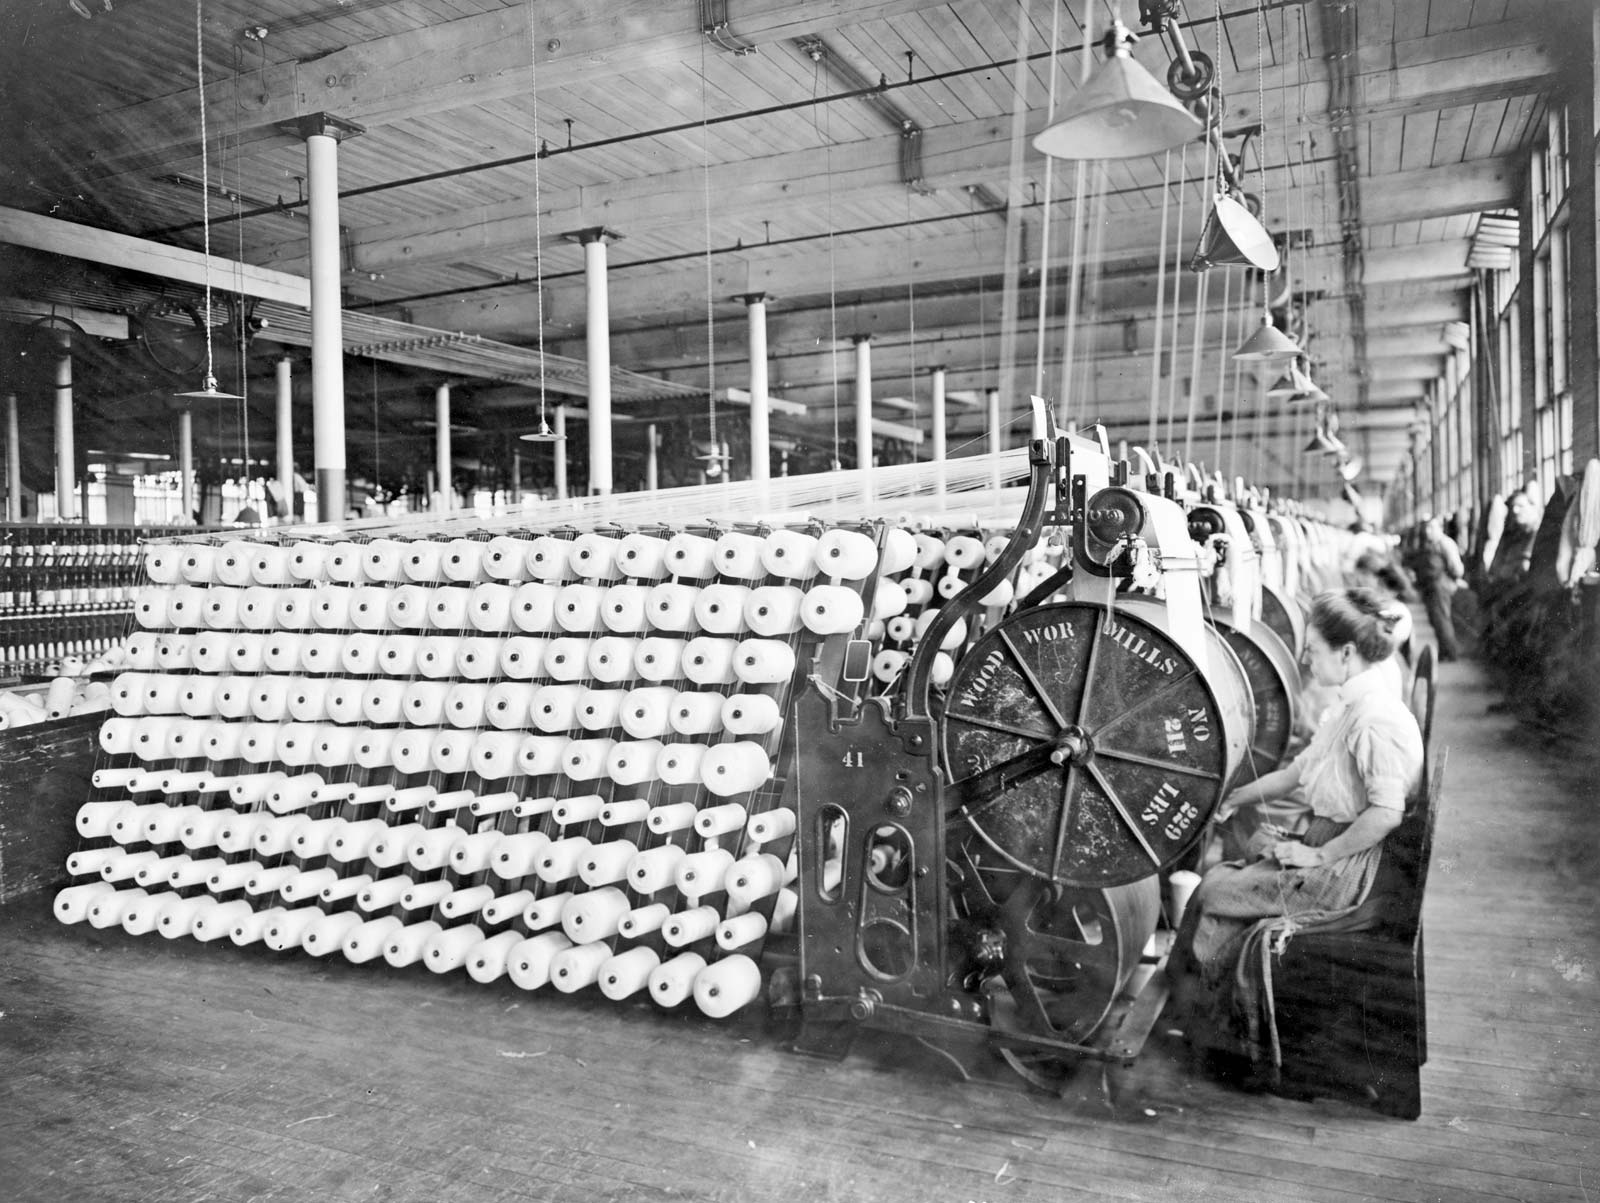 The history and evolution of the industrial sector